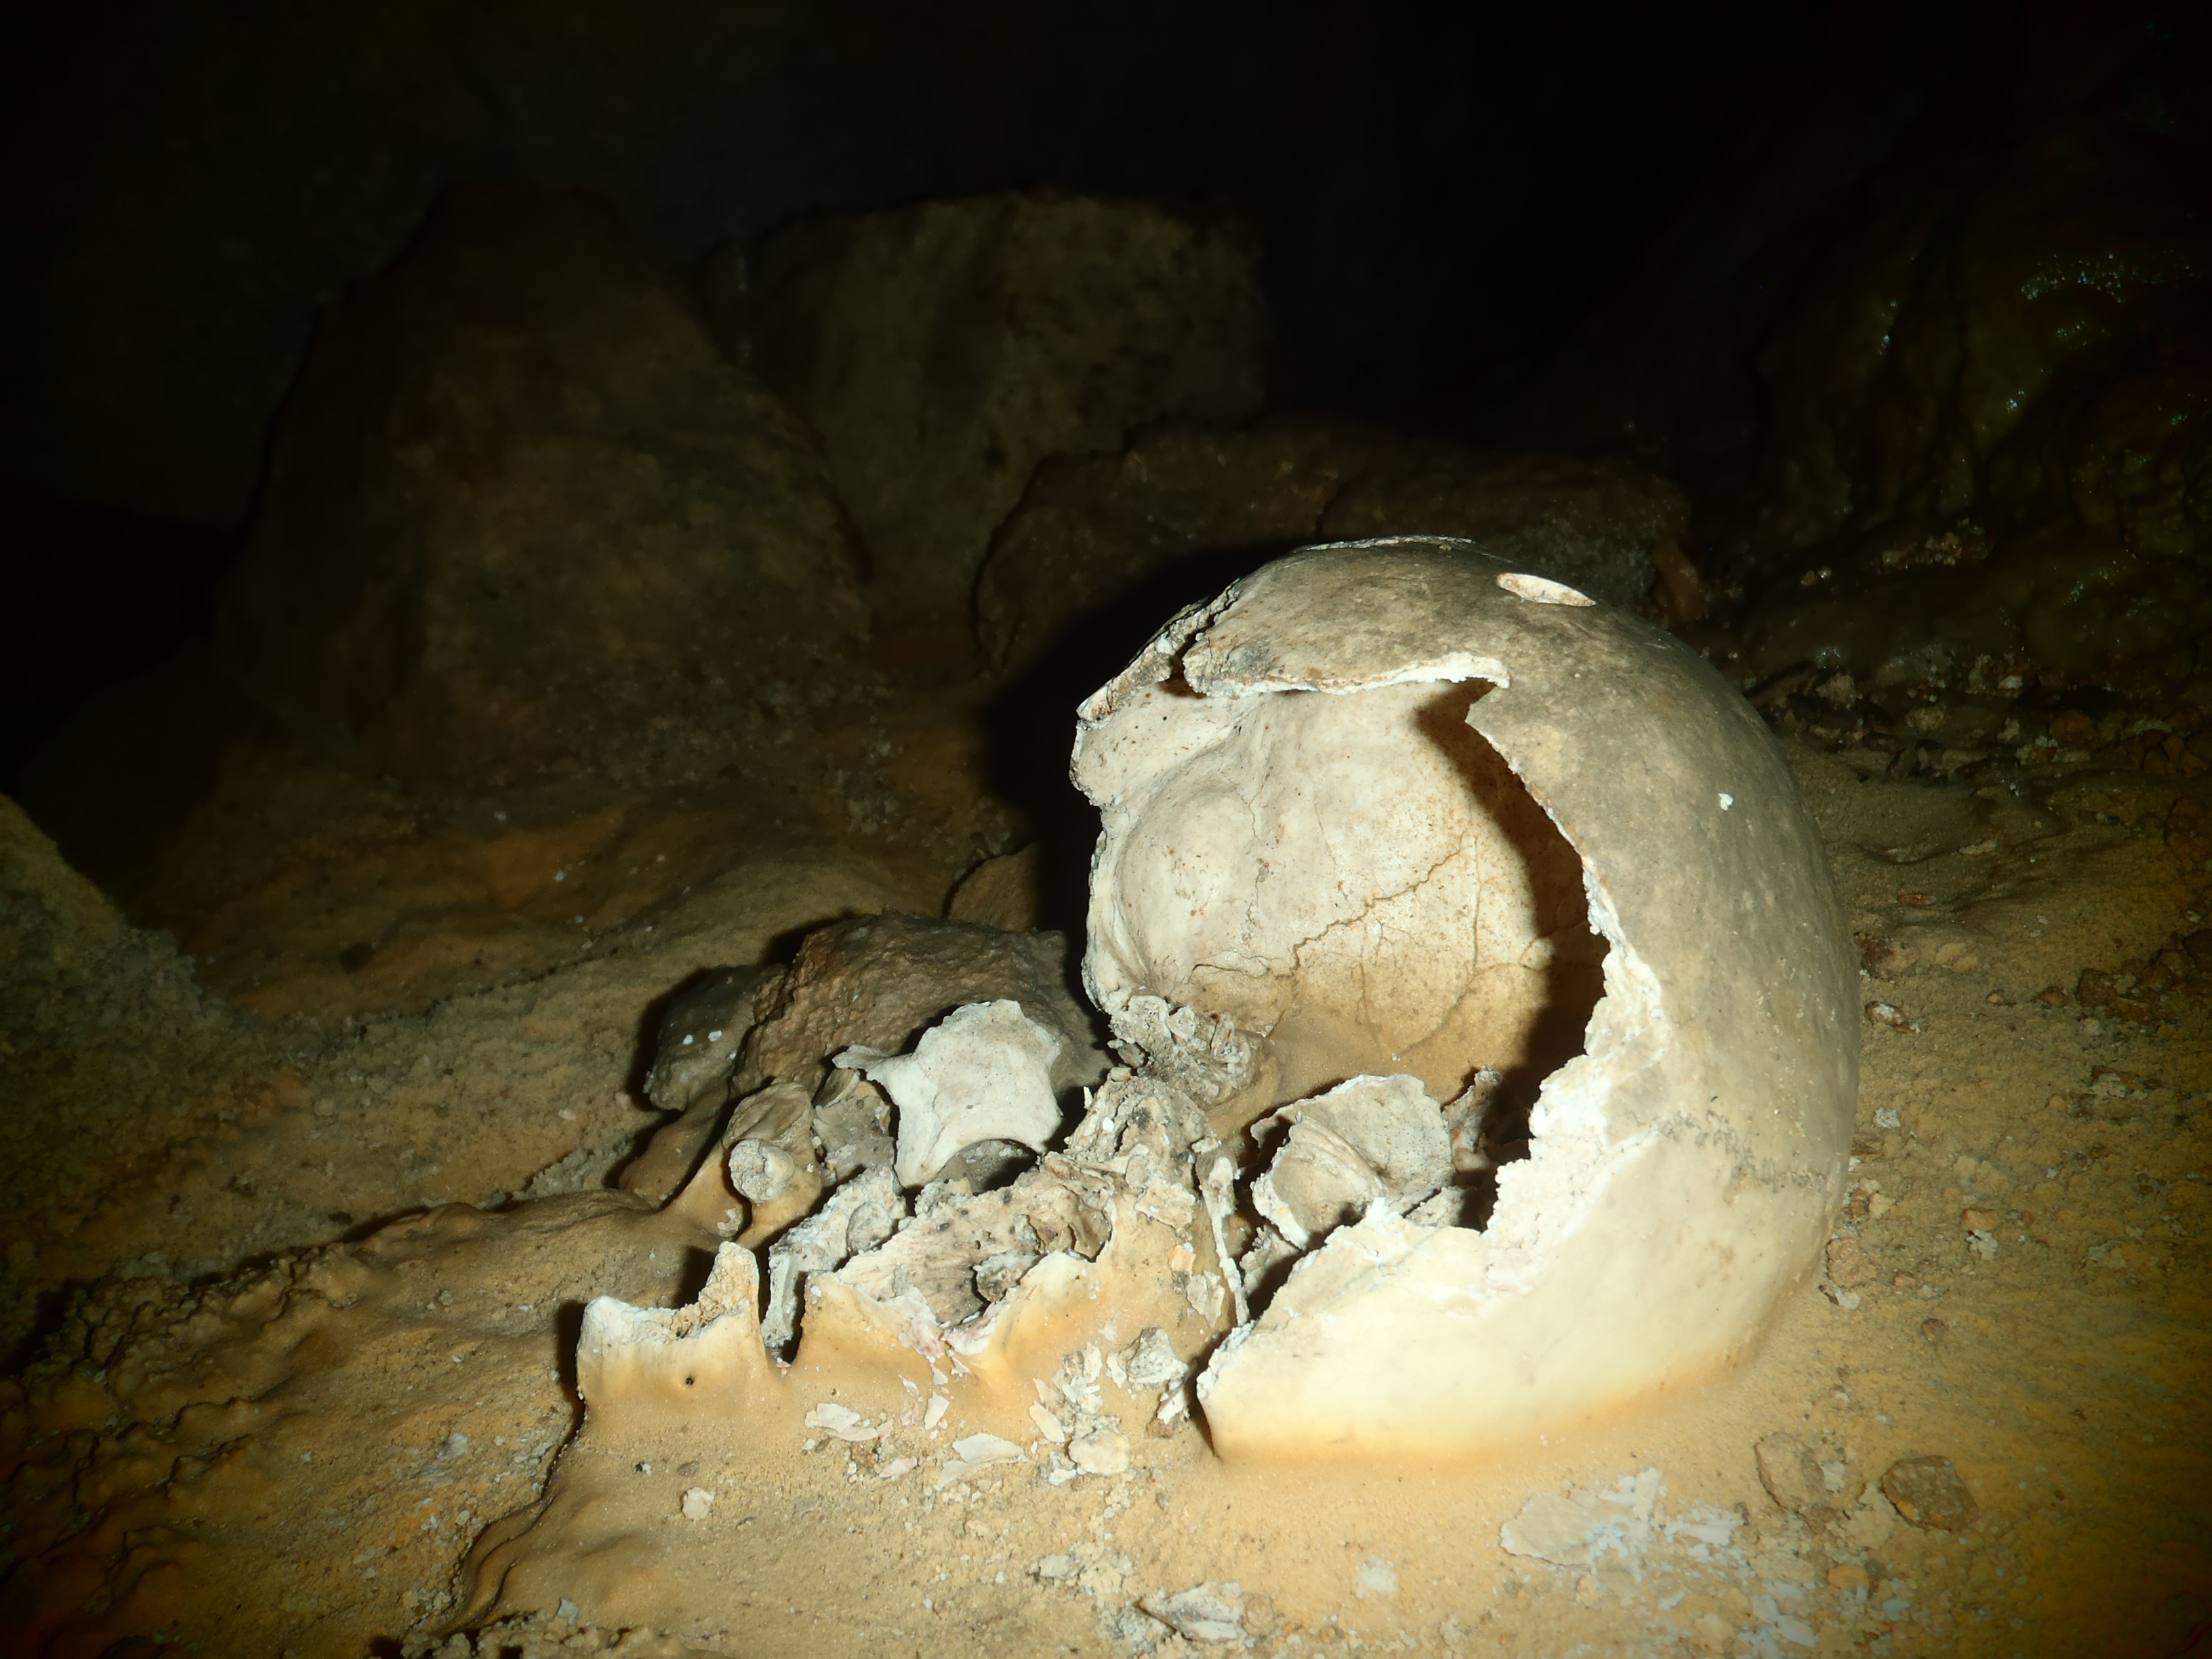 Ancient Mayan Remains in Crystal Cave; Belmopan, Belize; 2013